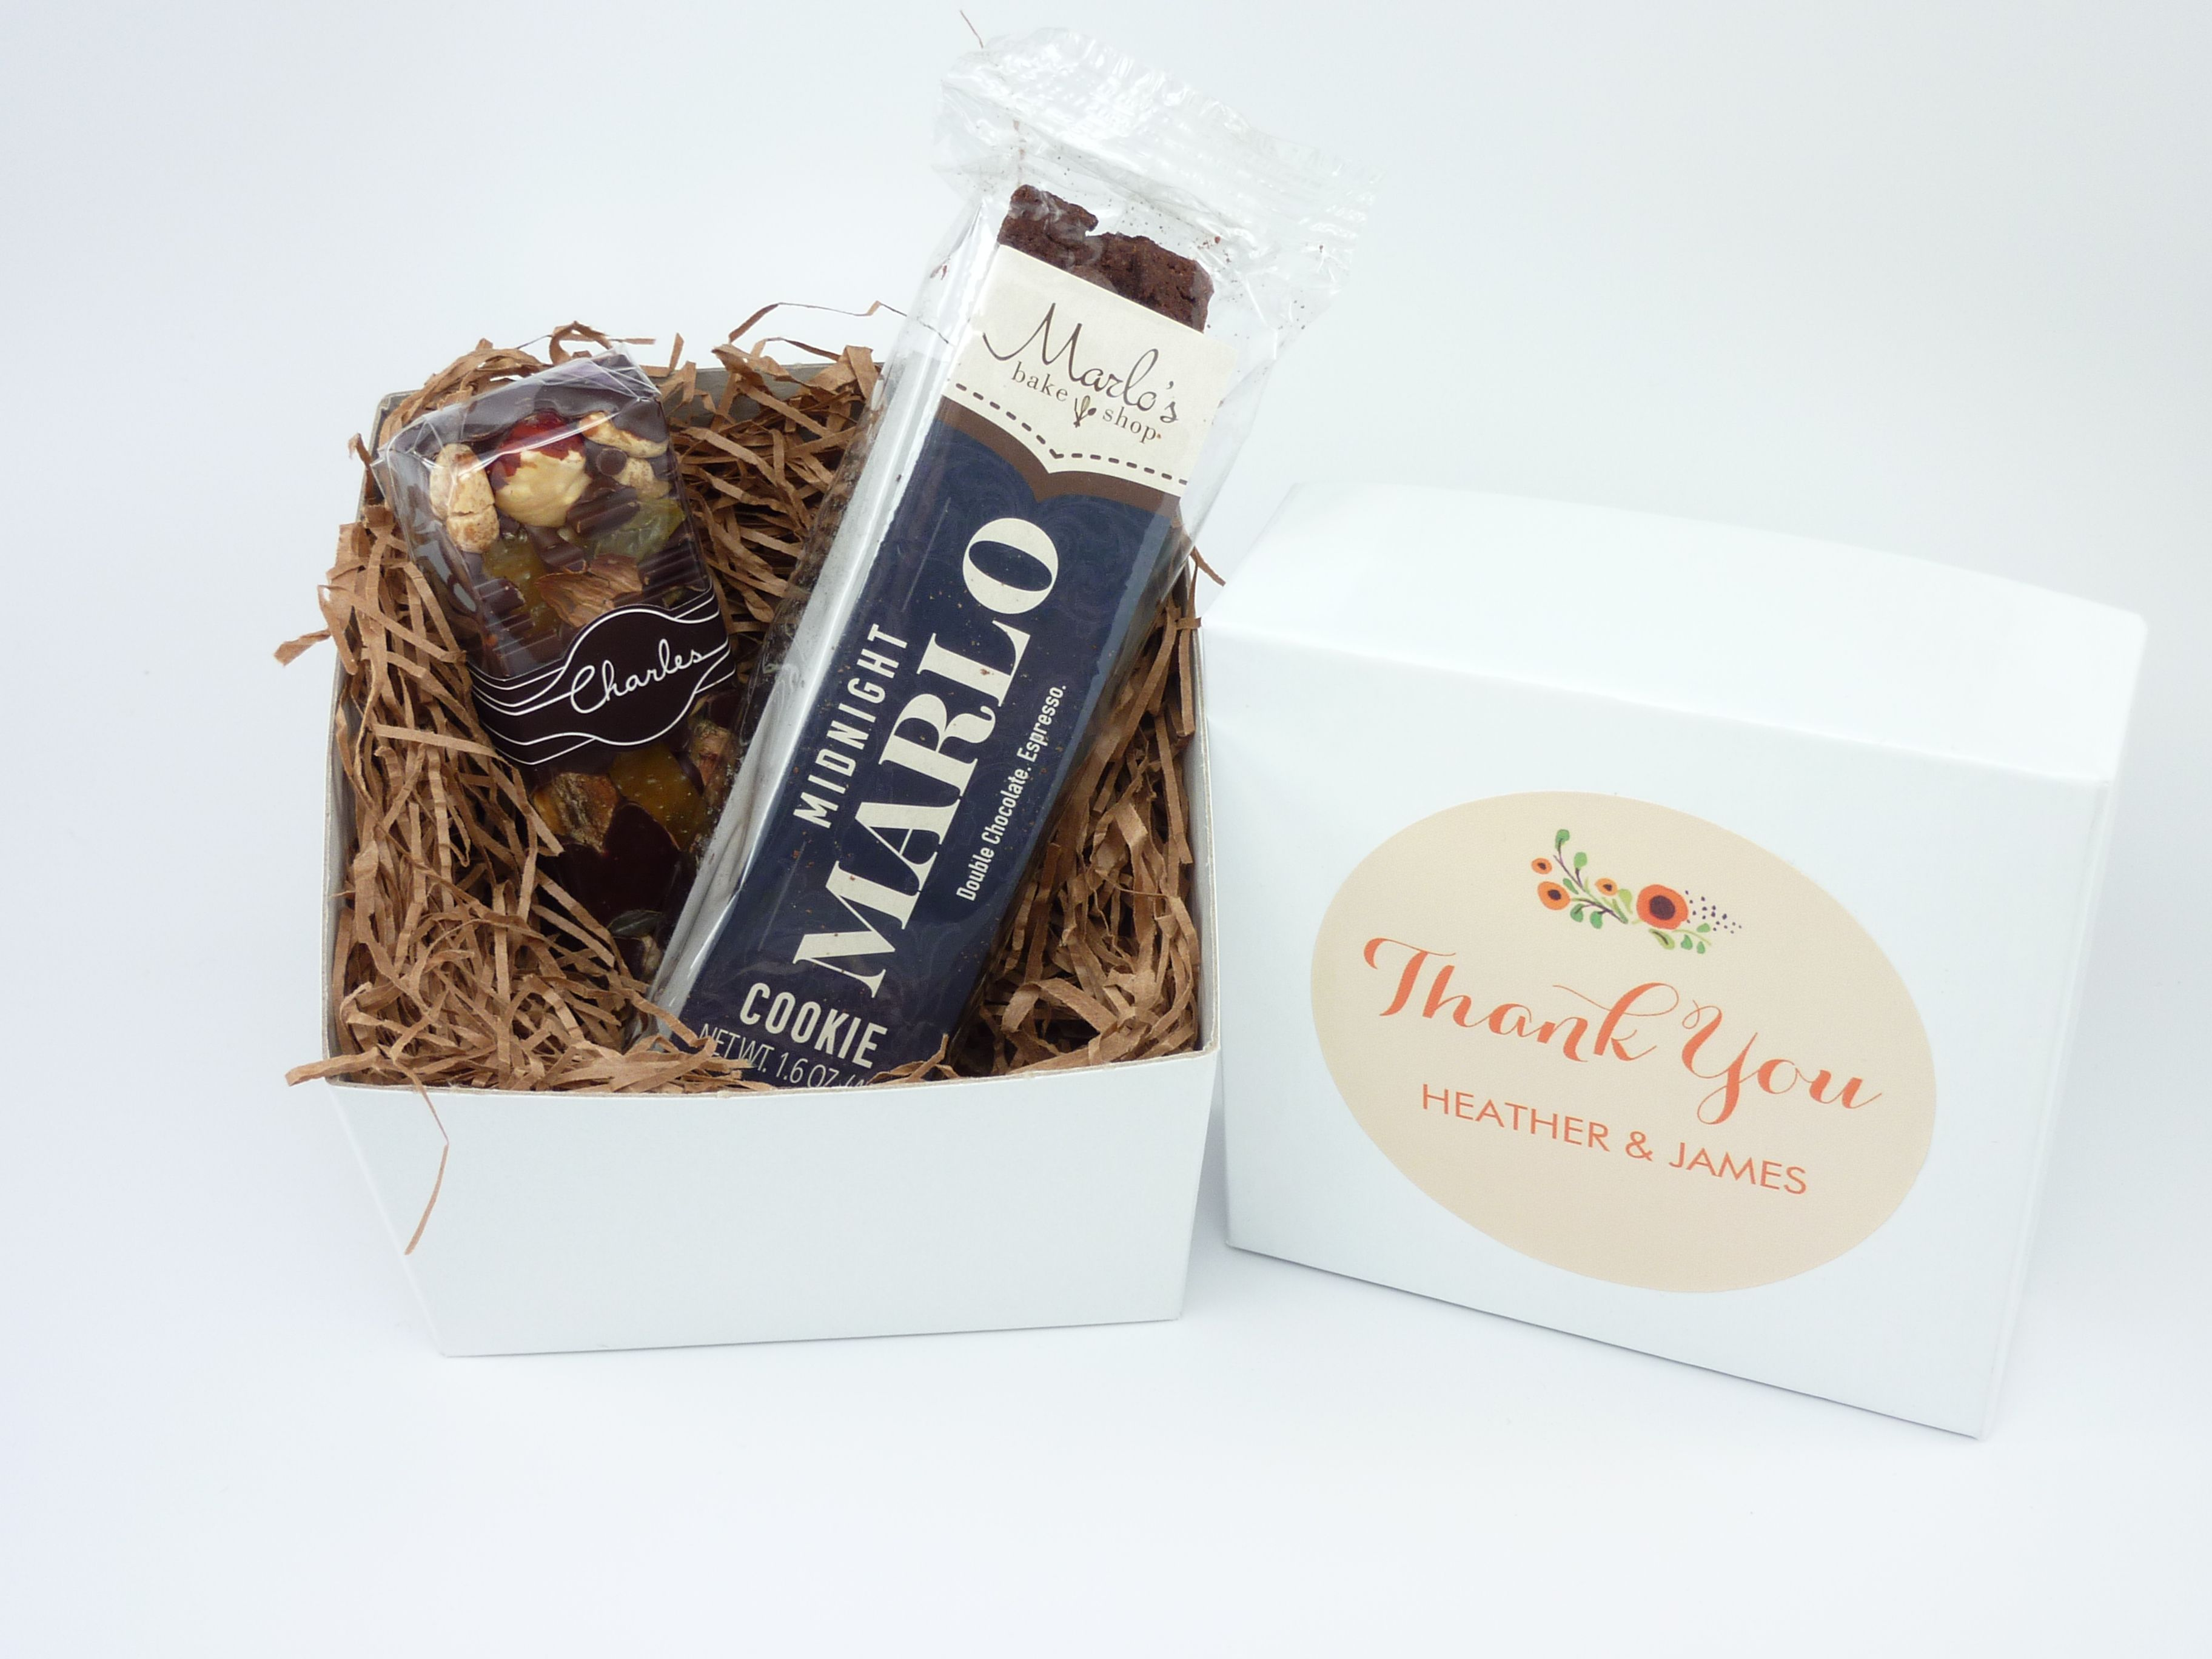 Awesome San Francisco wedding favors! http://www.sincerelysf.com ...